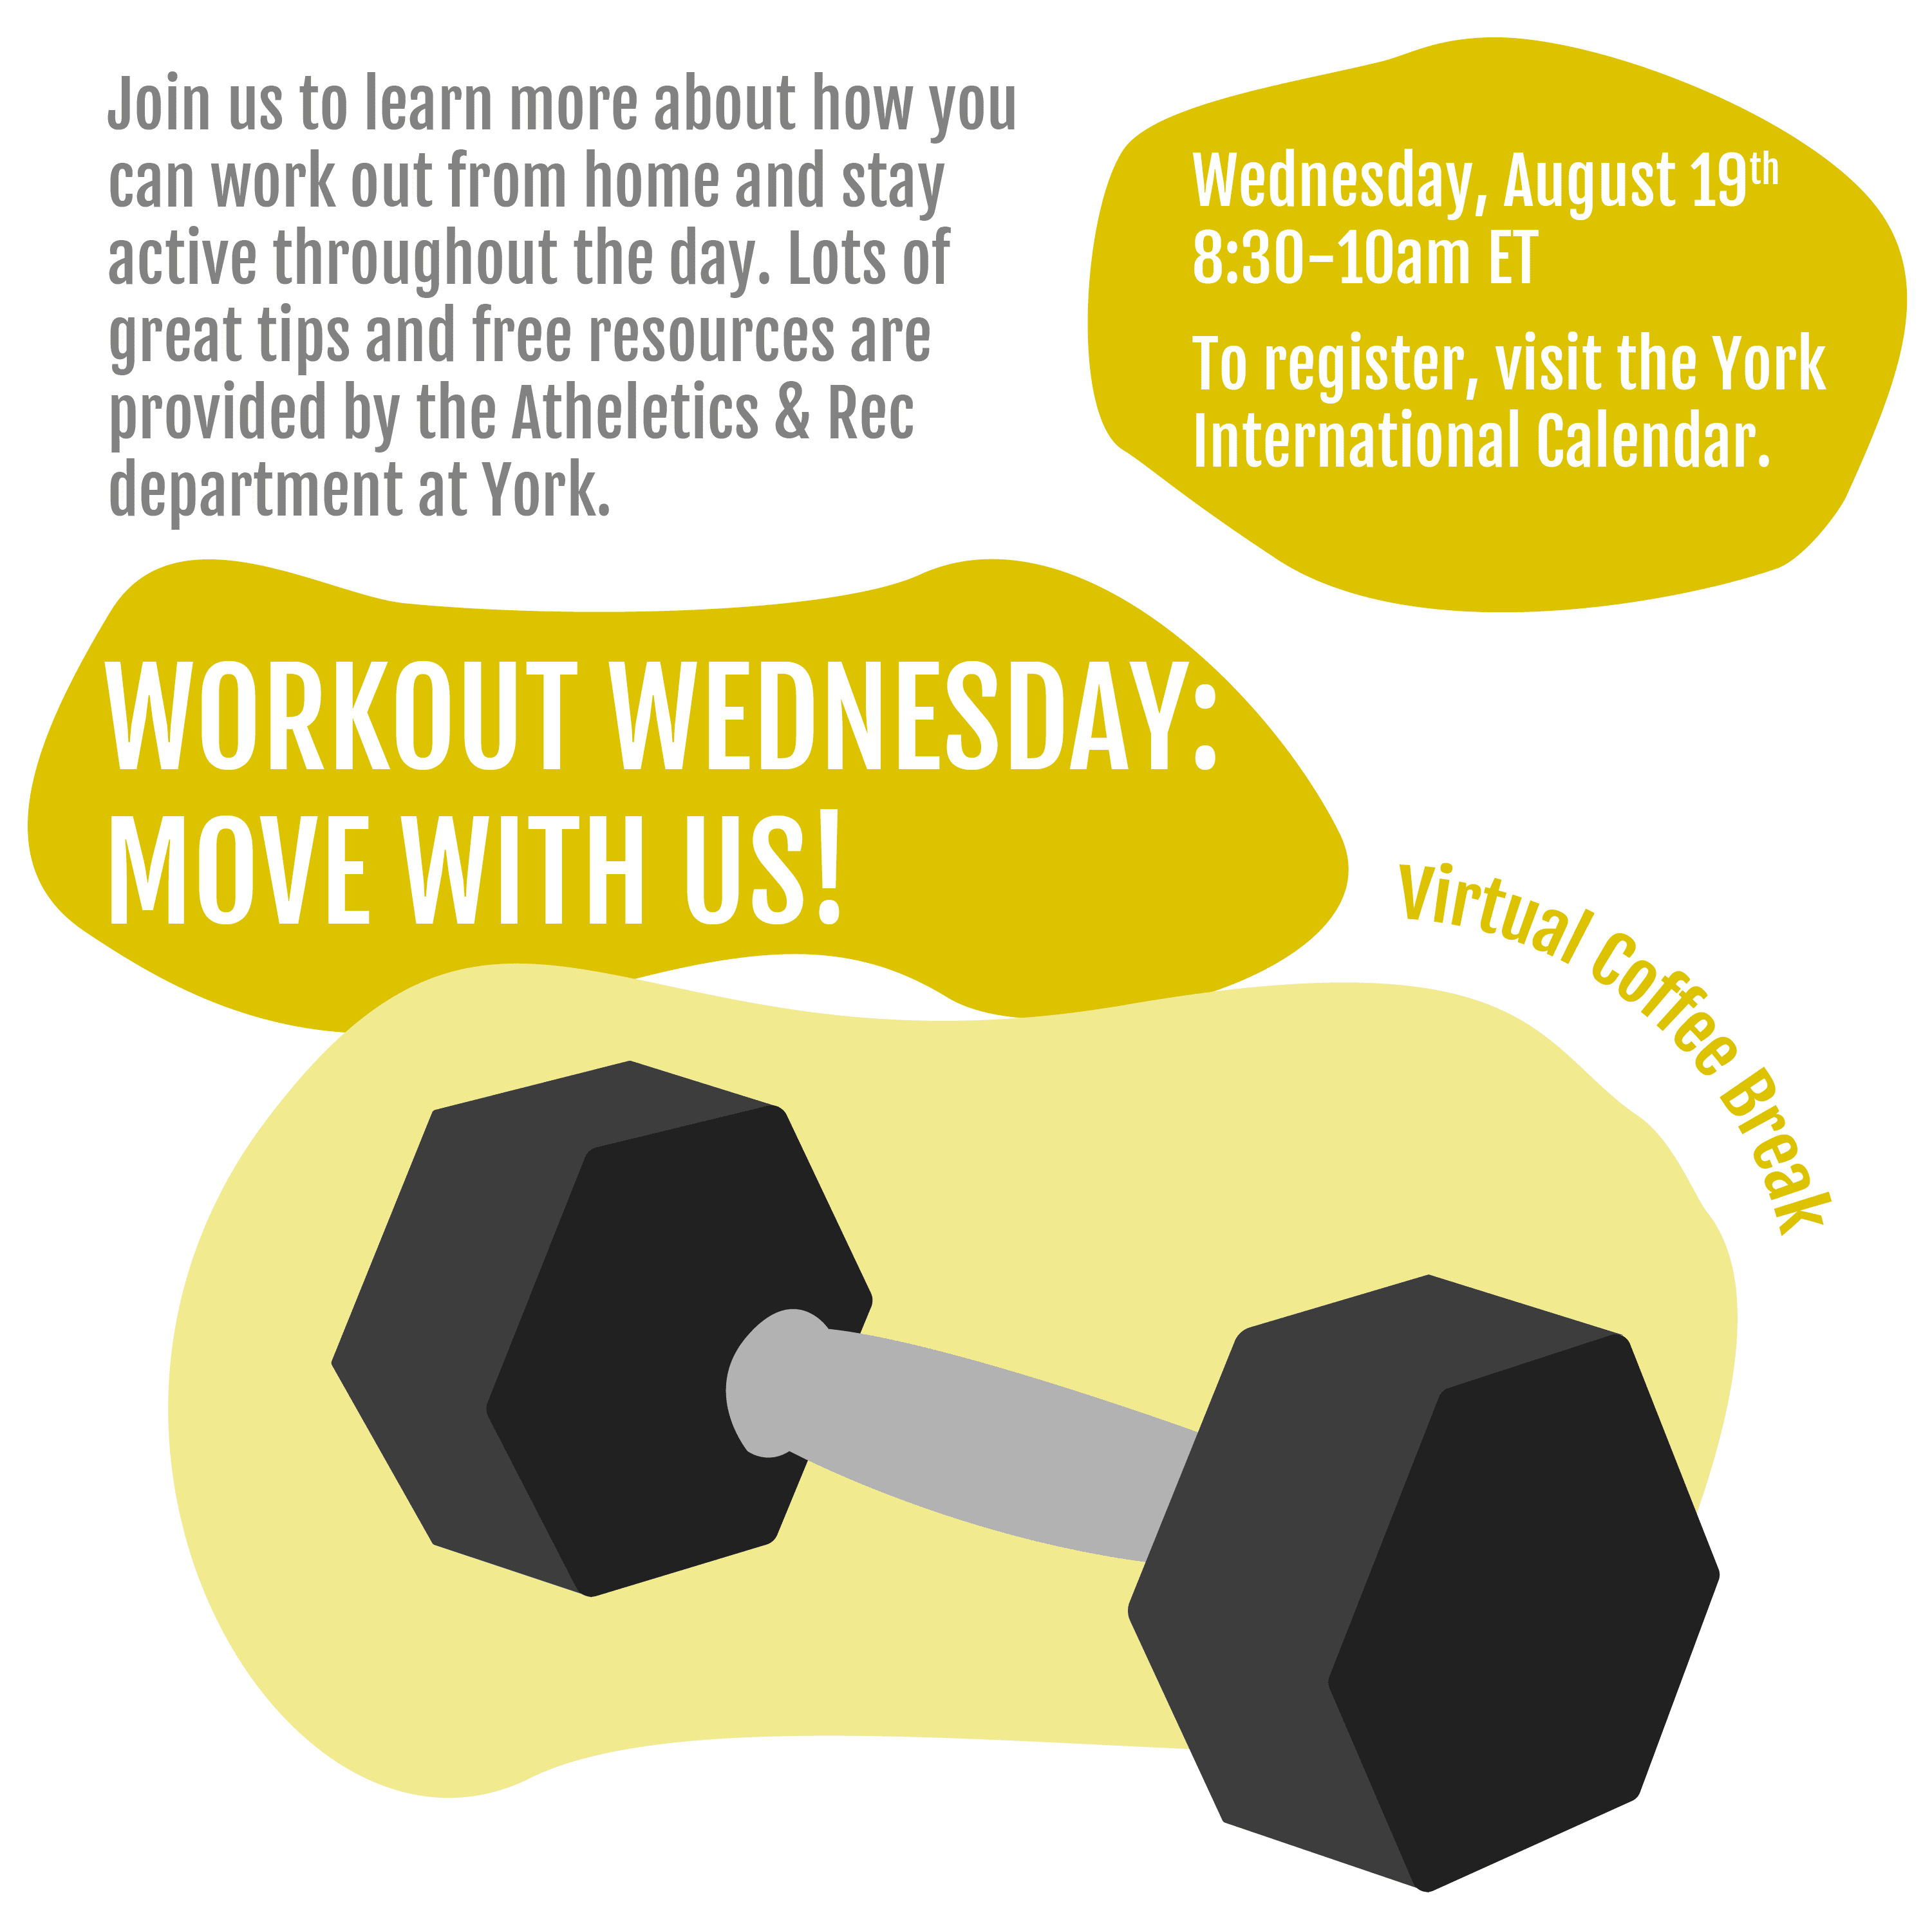 Virtual Coffee Break: Workout Wednesday - Move With Us! @ Zoom